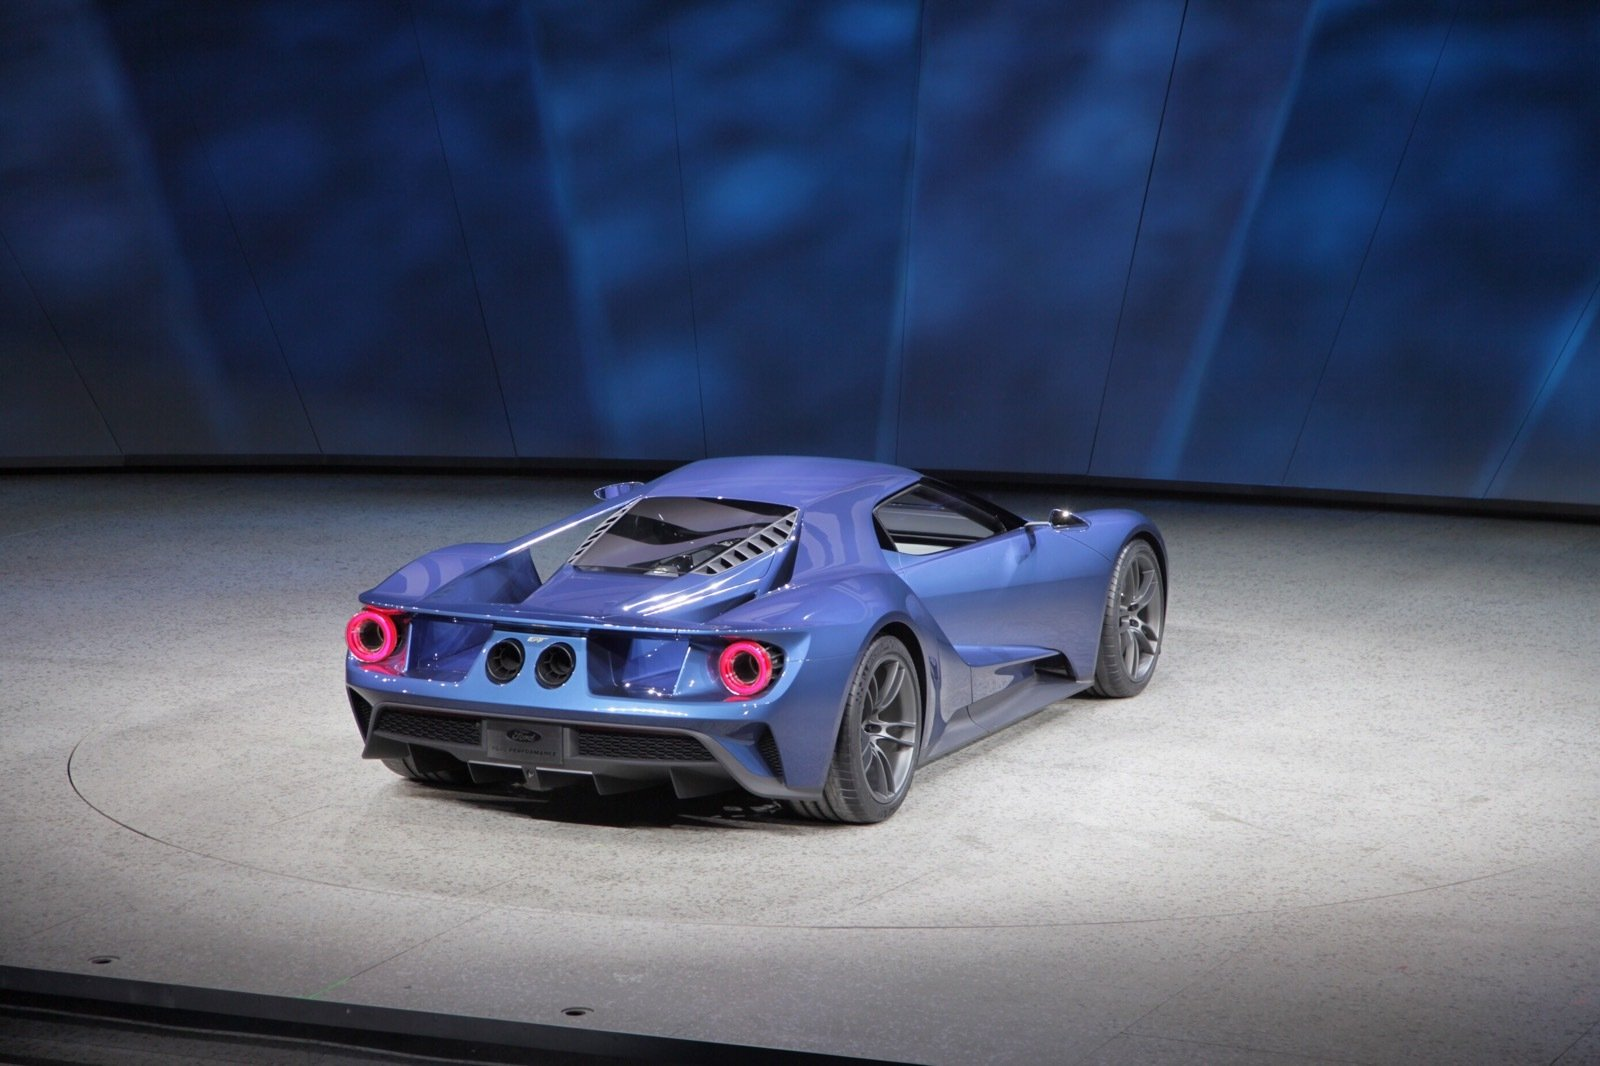 2017 ford gt picture 610614 car review top speed. Black Bedroom Furniture Sets. Home Design Ideas